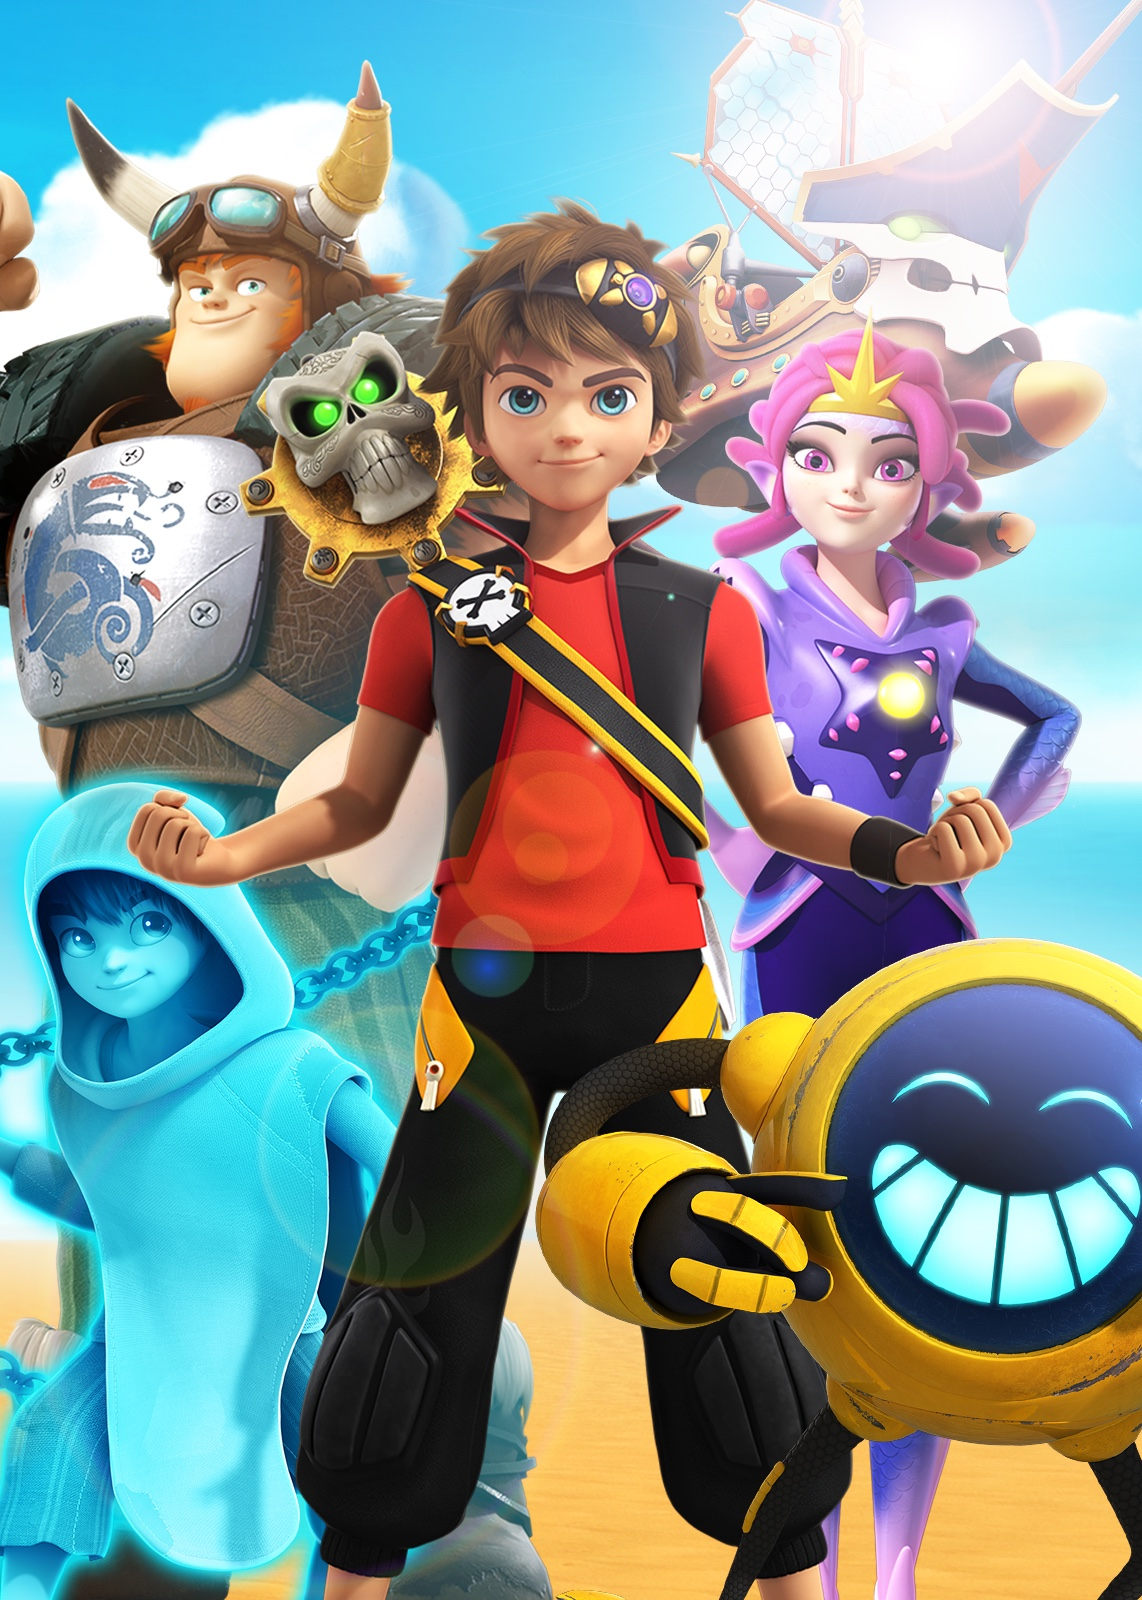 Zak Storm is A Seemingly Typical Kid